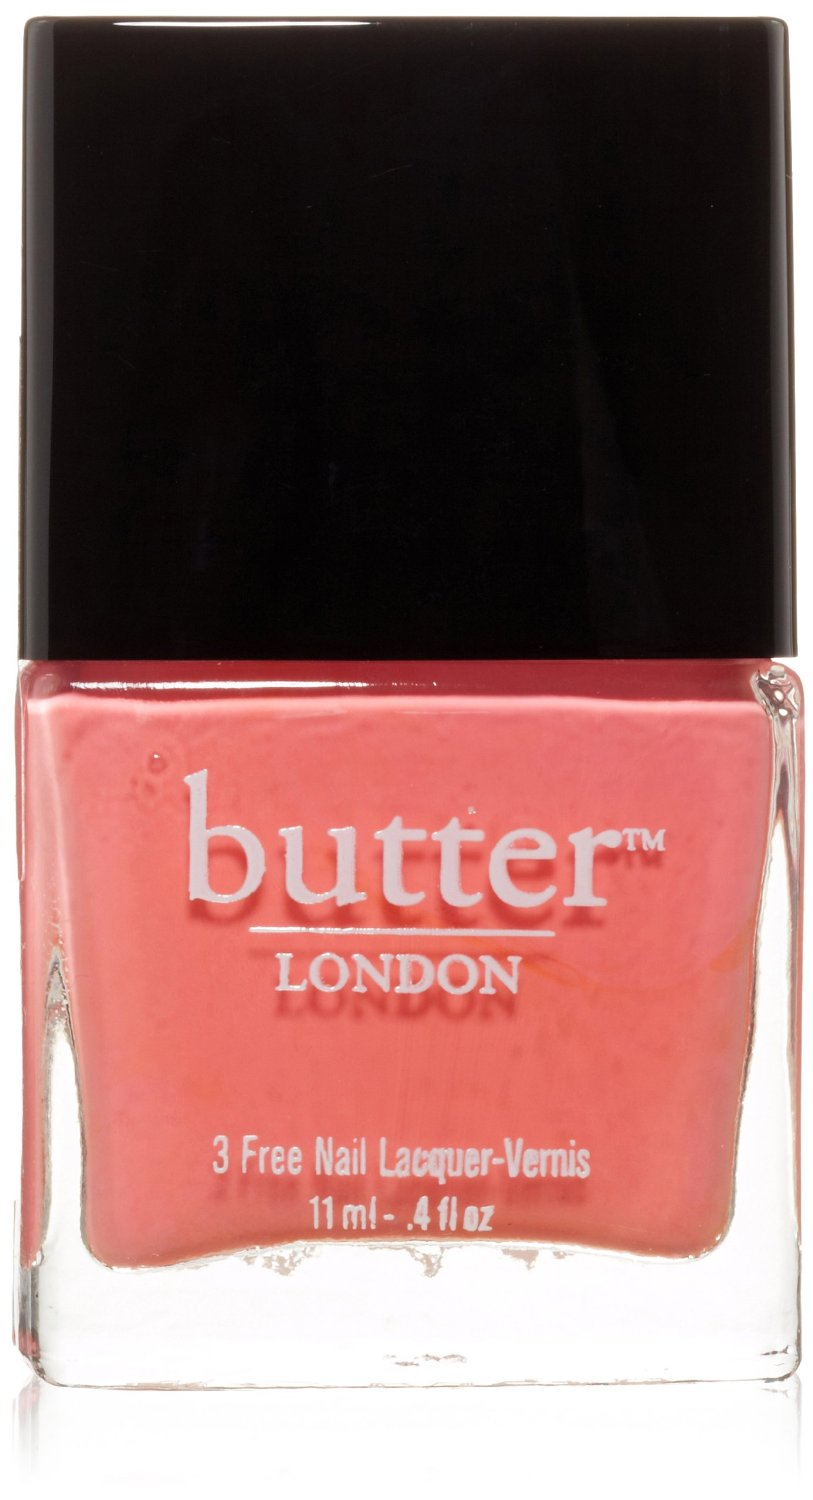 Amazon.com: butter london nail lacquer, white & pink shades, trout pout: beauty